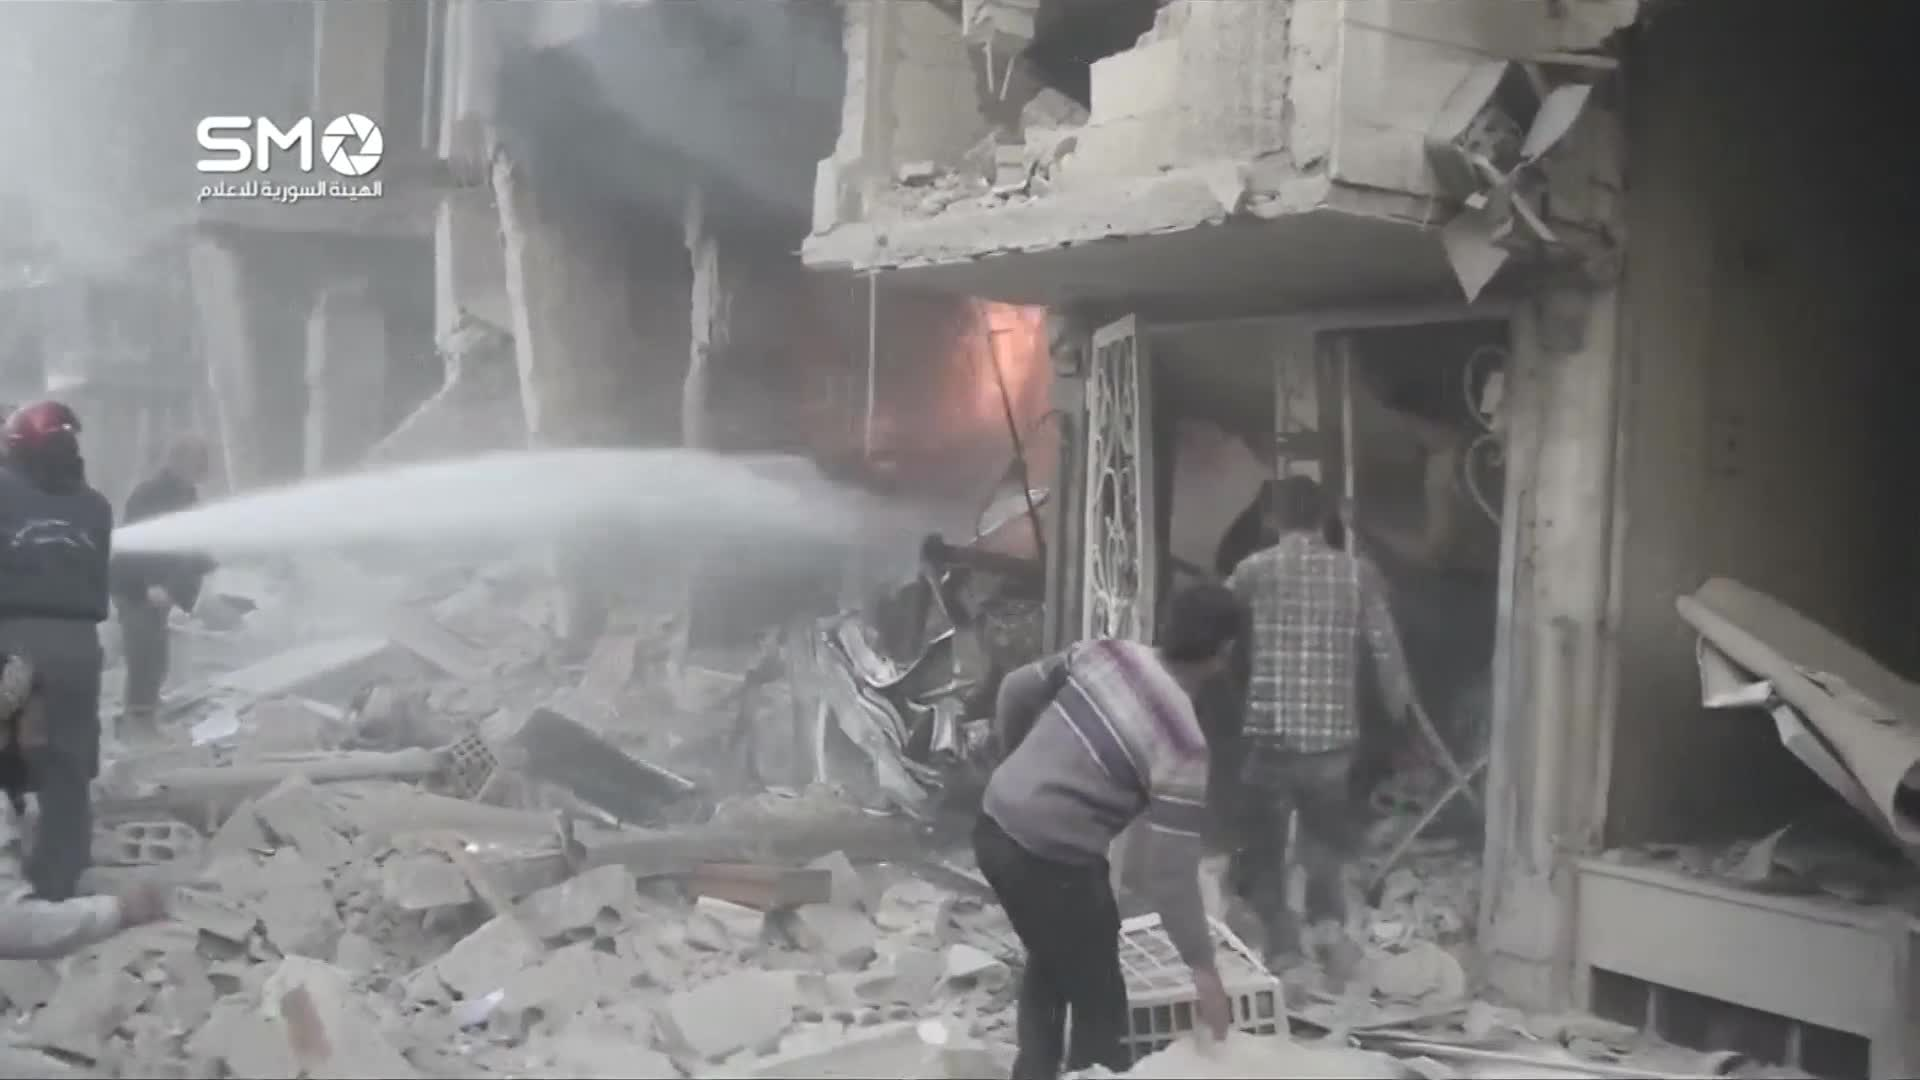 Syrians rescued from rubble following Douma air strikes - social media video